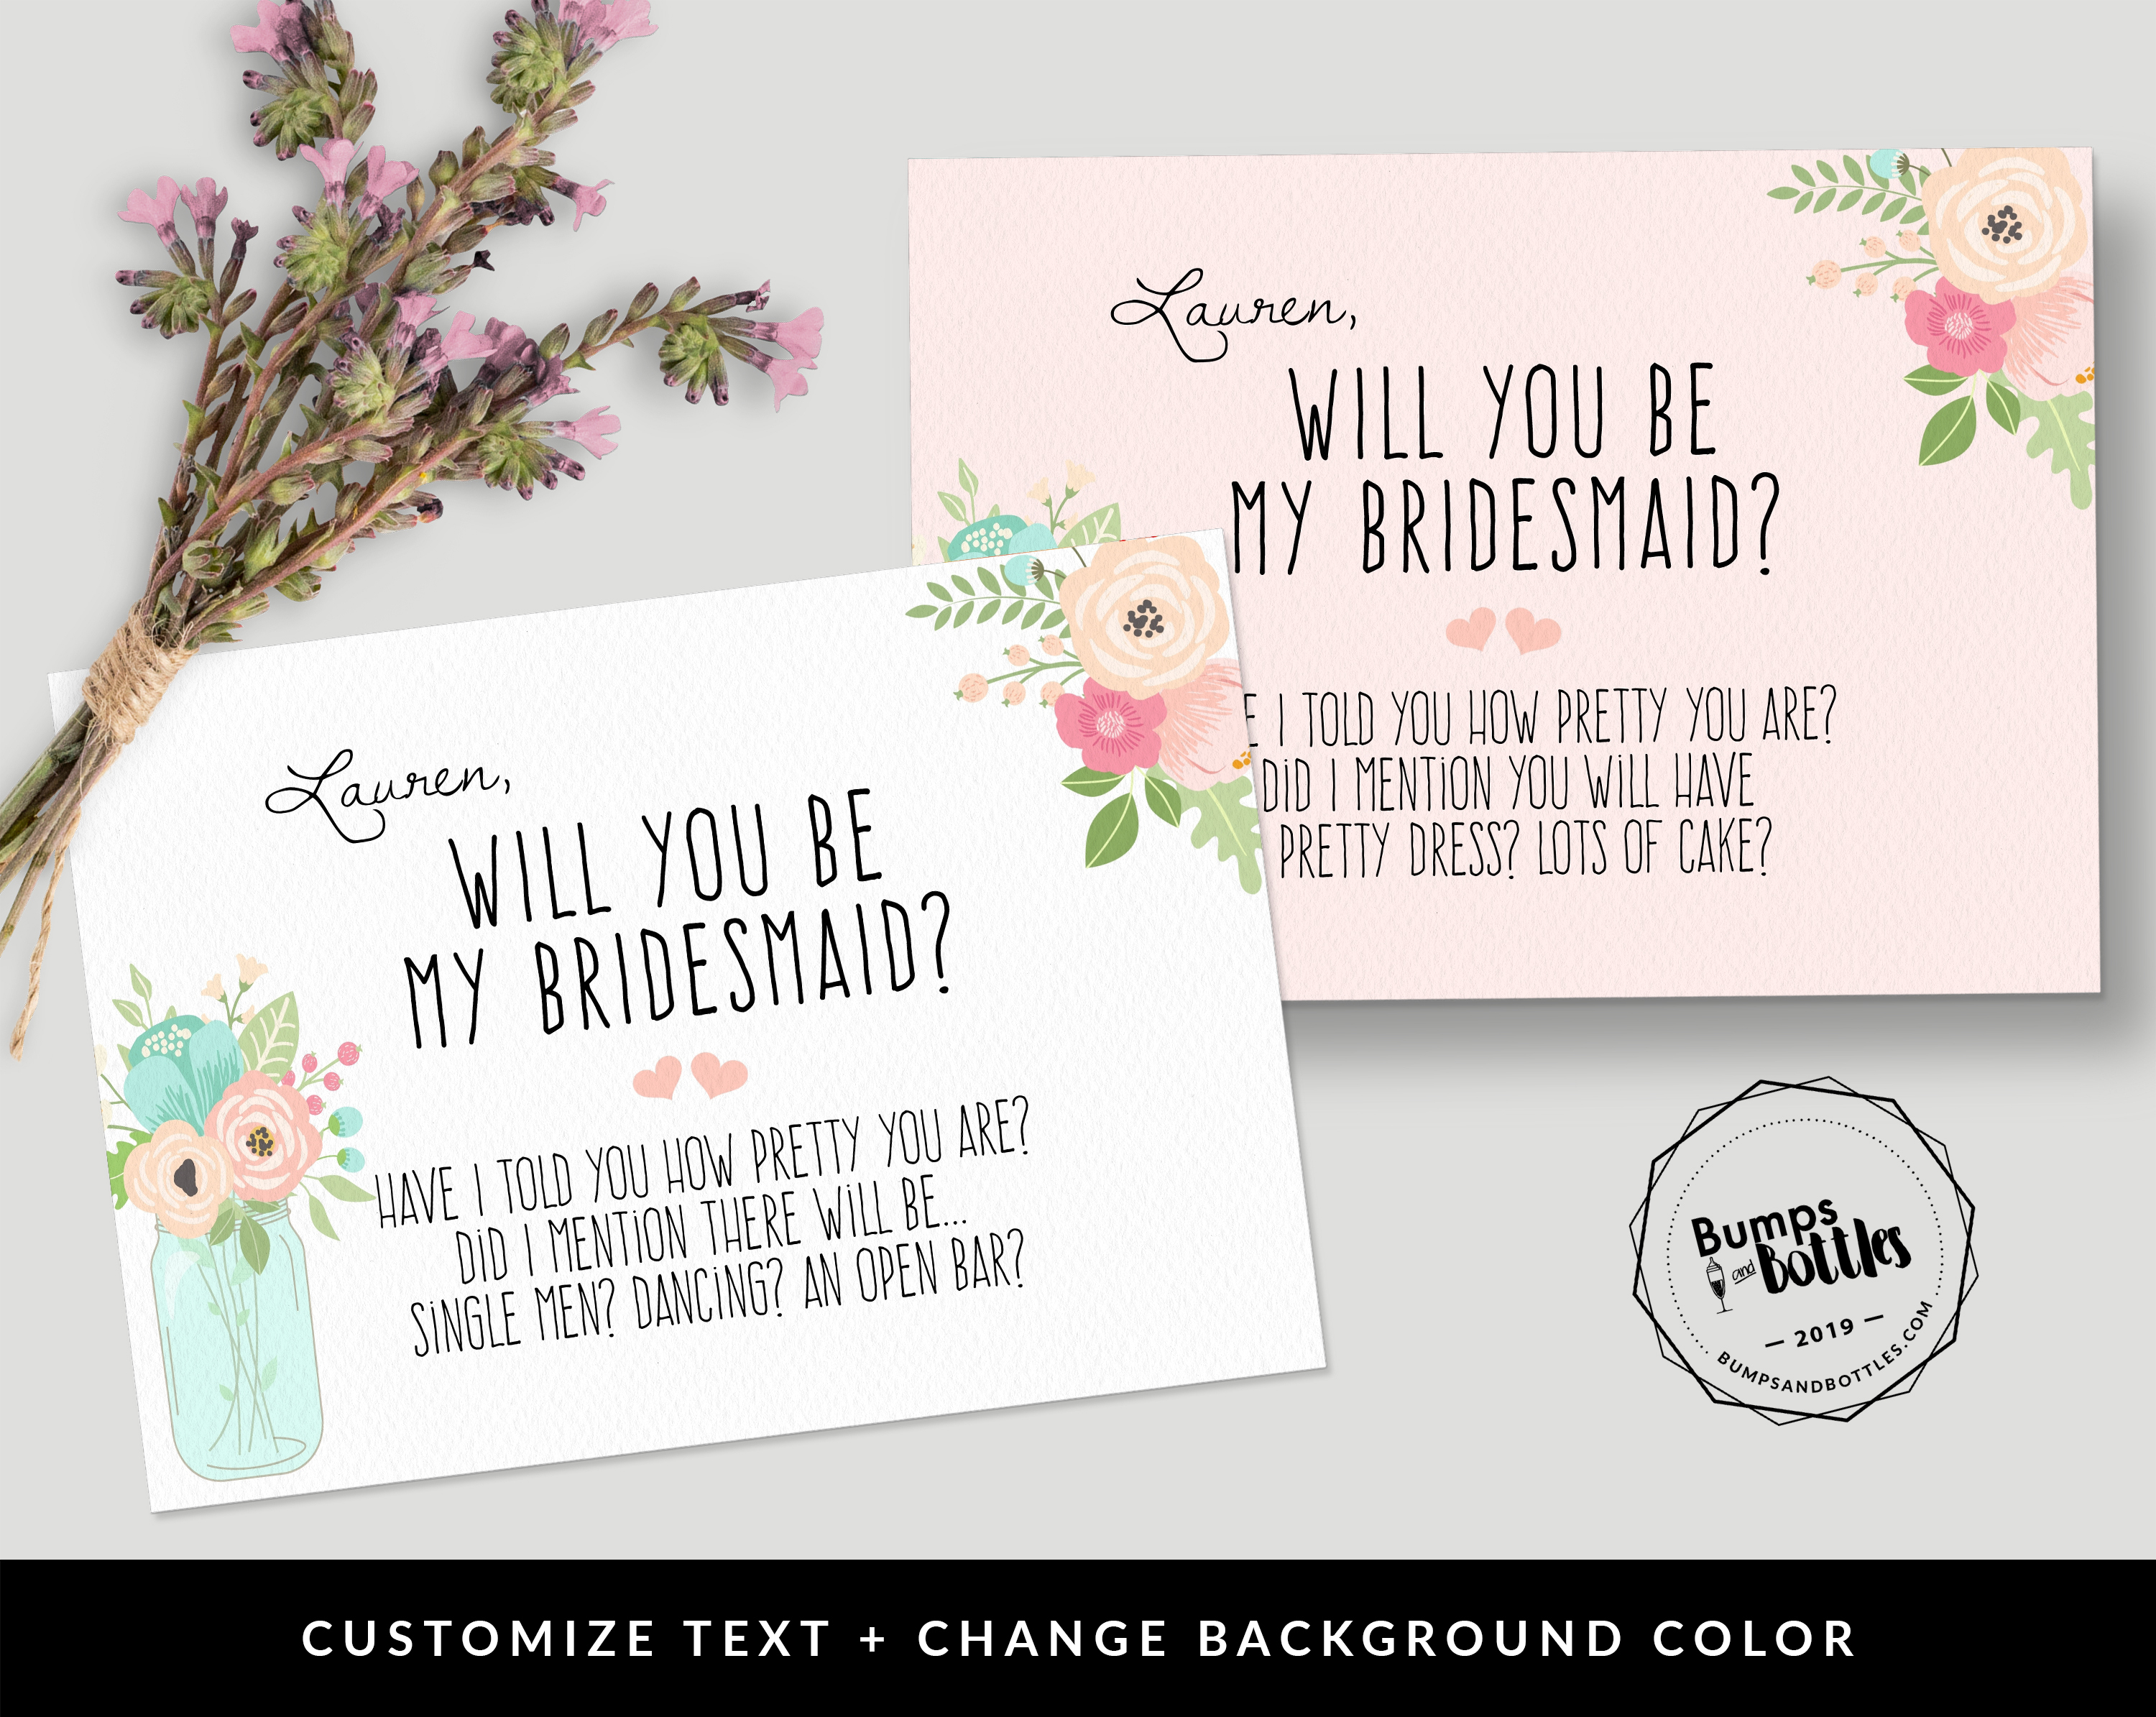 Free Printable: Will You Be My Bridesmaid? - Free Printable Will You Be My Bridesmaid Cards